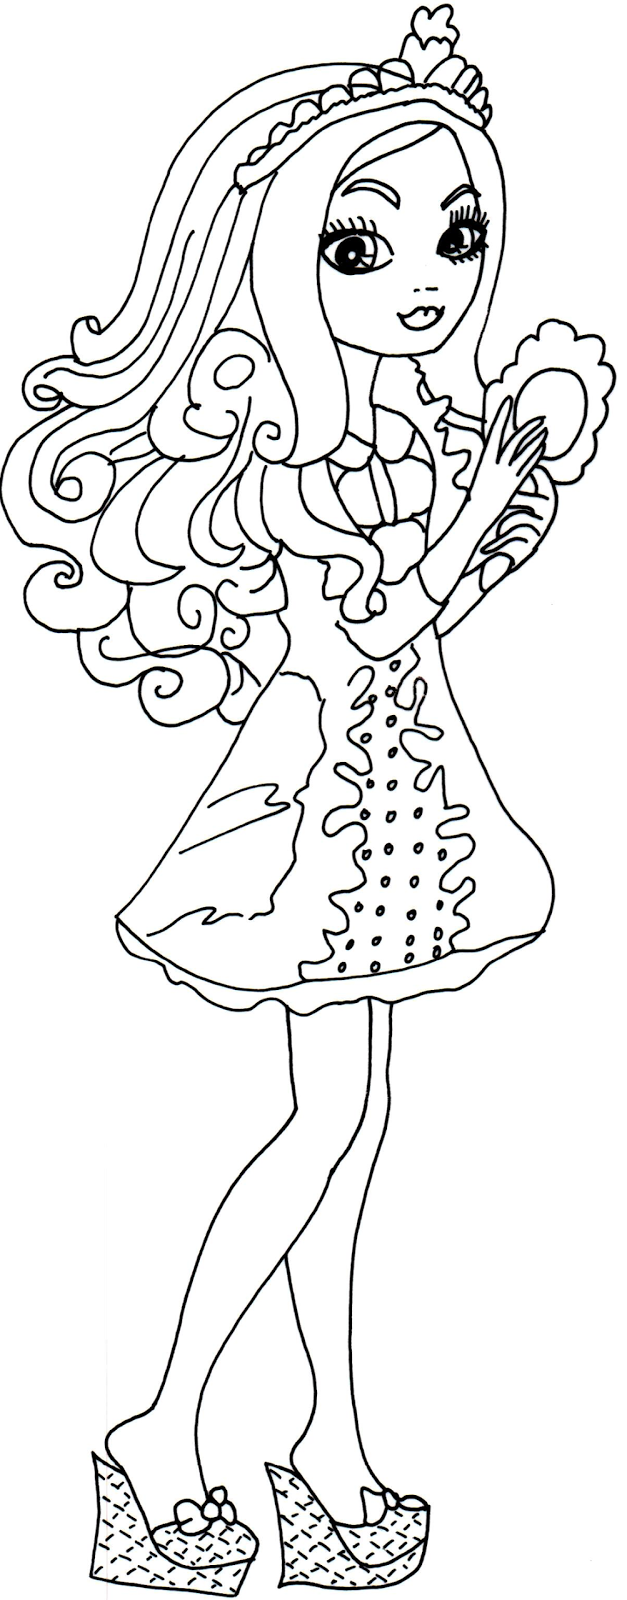 627x1600 Ever After High Apple White Coloring Pages